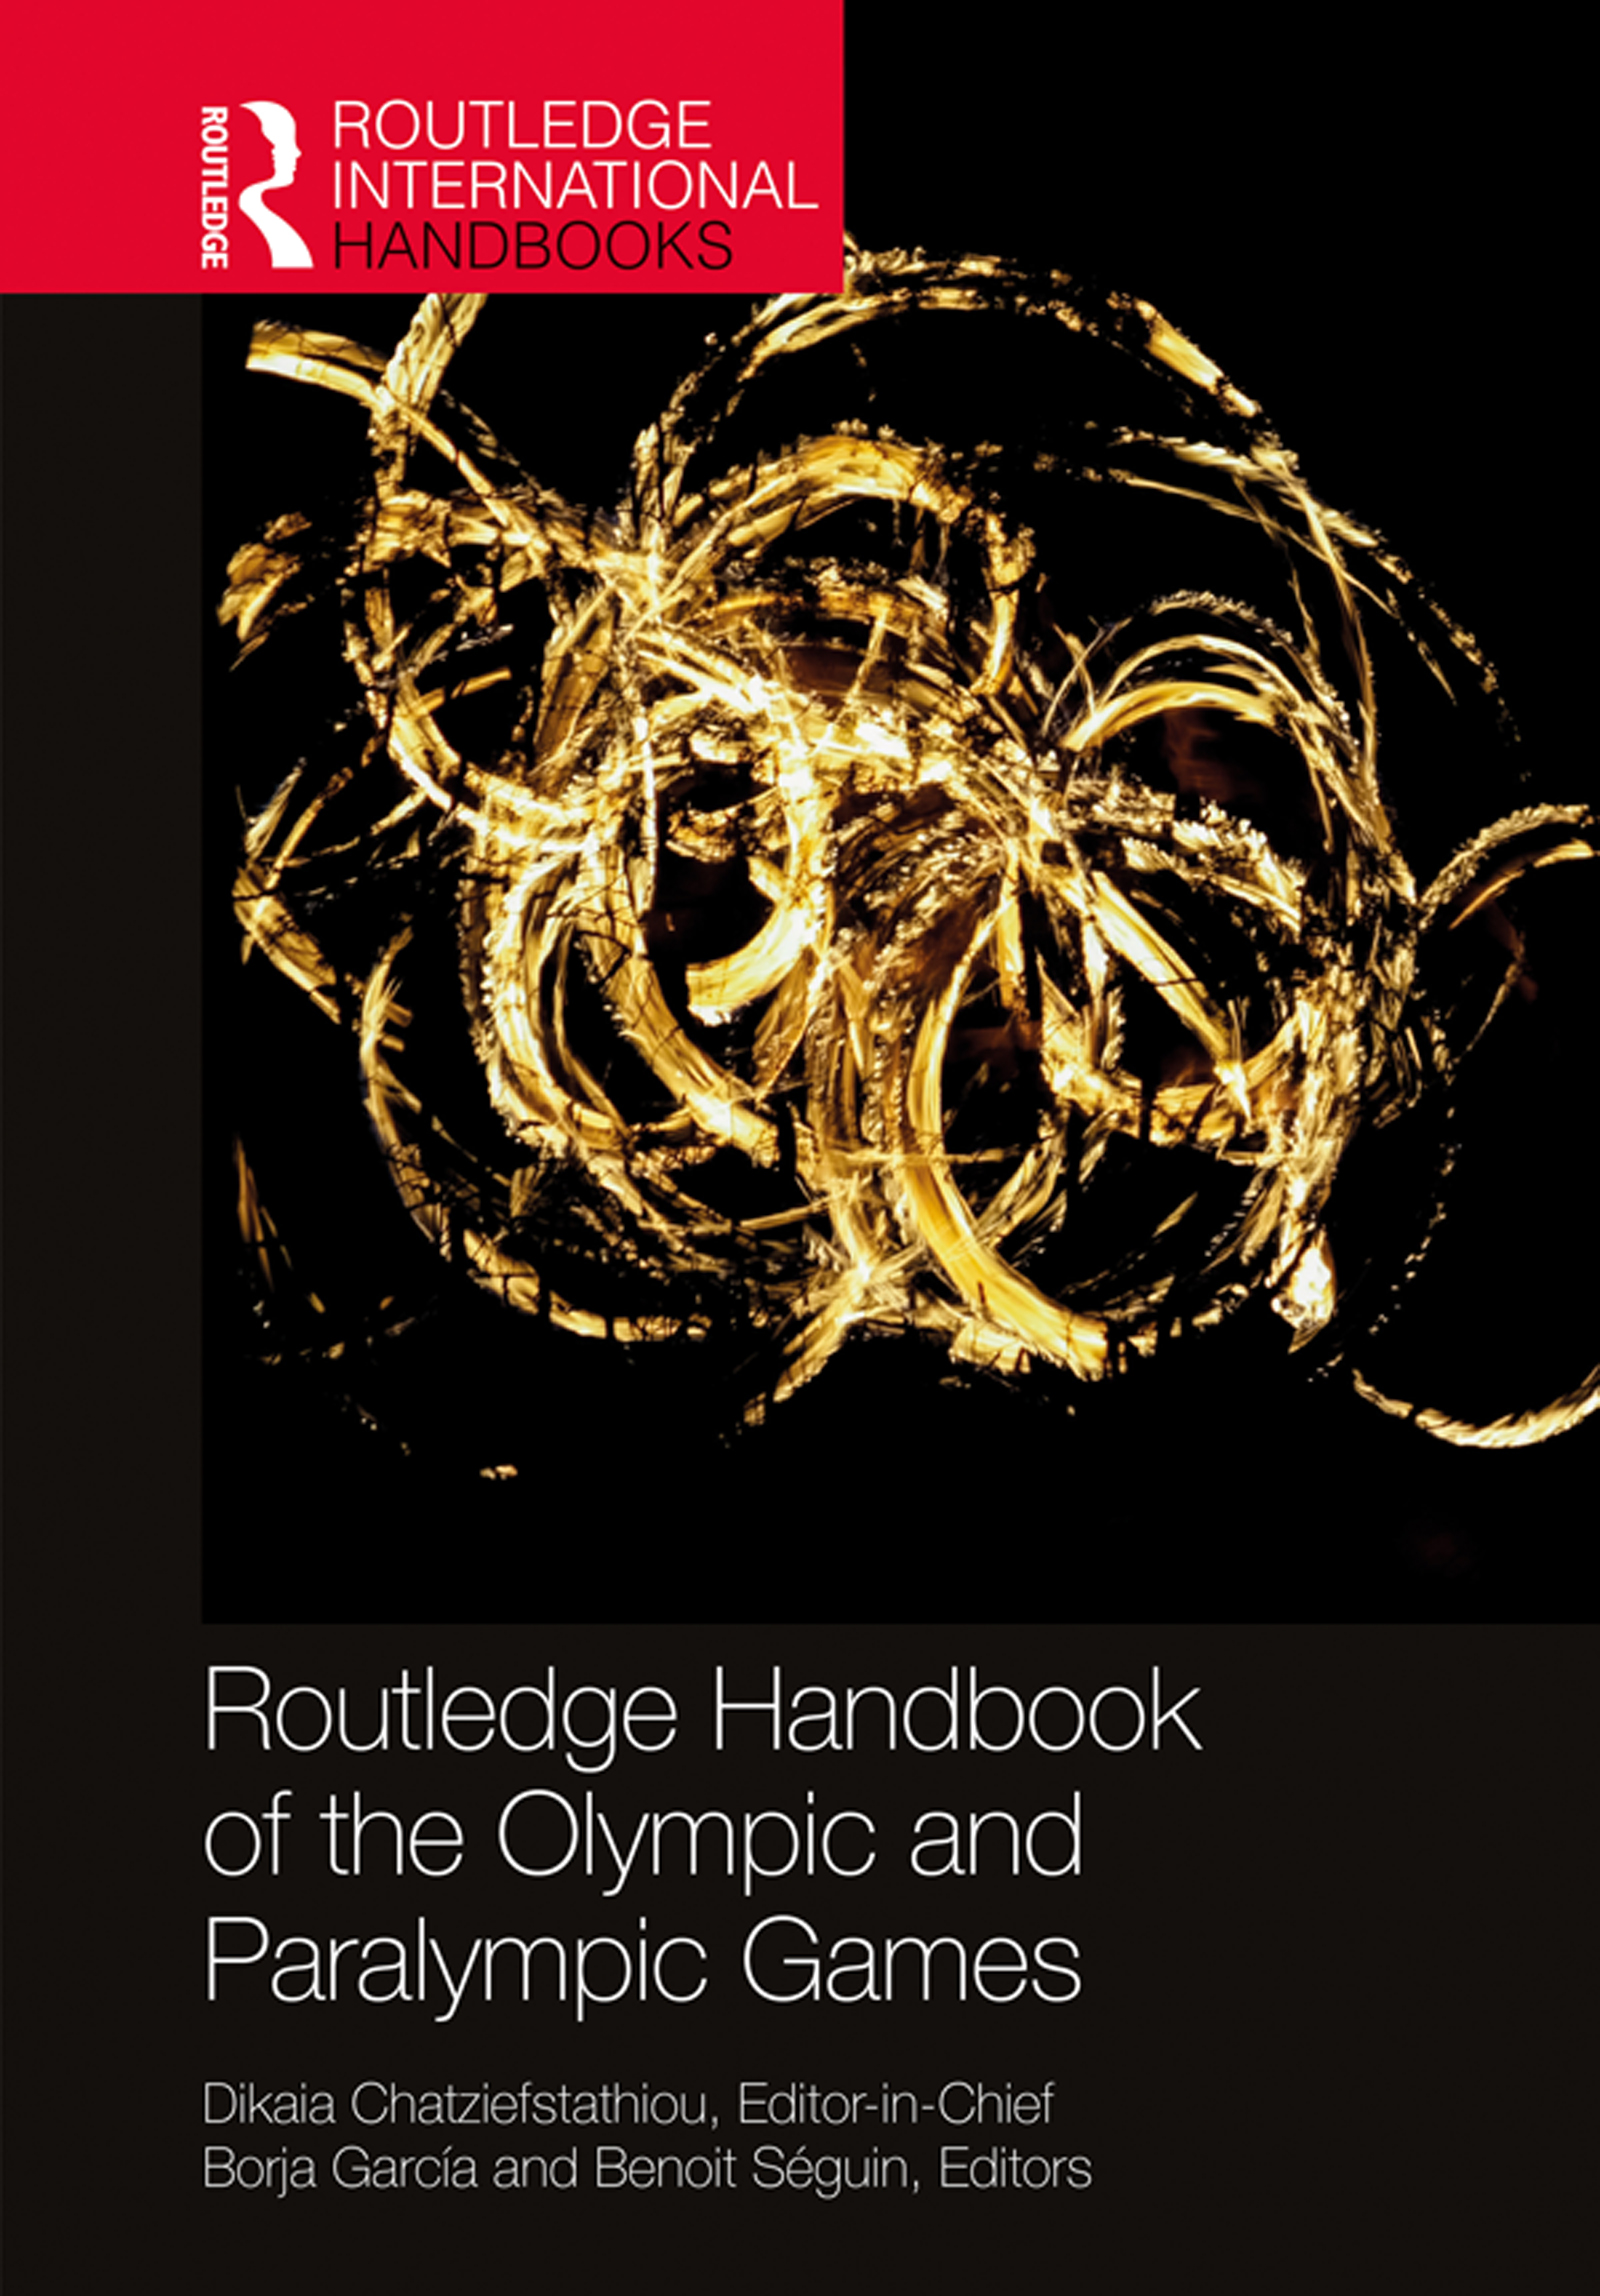 Towards a shared Olympic responsibility